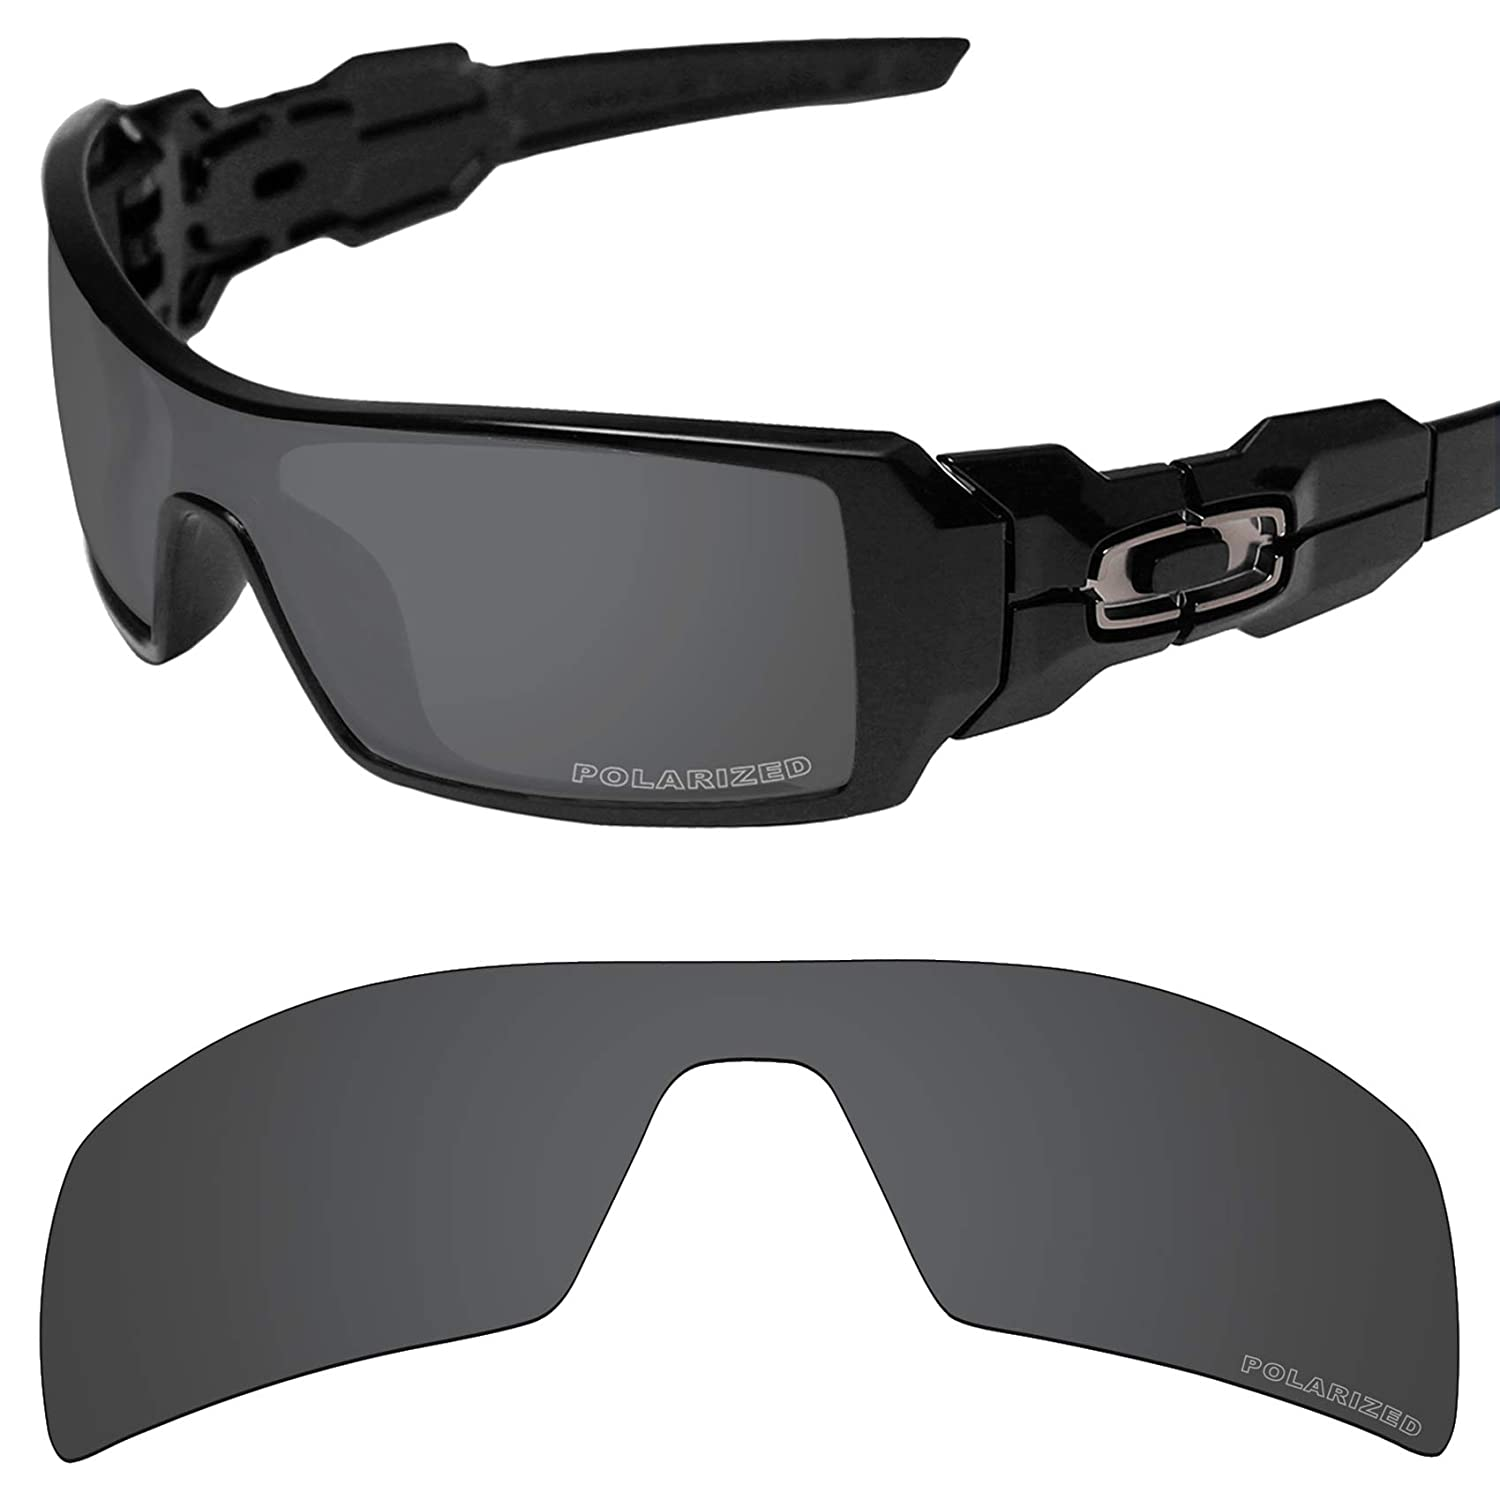 17651d895 Amazon.com: Tintart Performance Lenses Compatible with Oakley Oil Rig  Polarized Etched-Carbon Black: Clothing